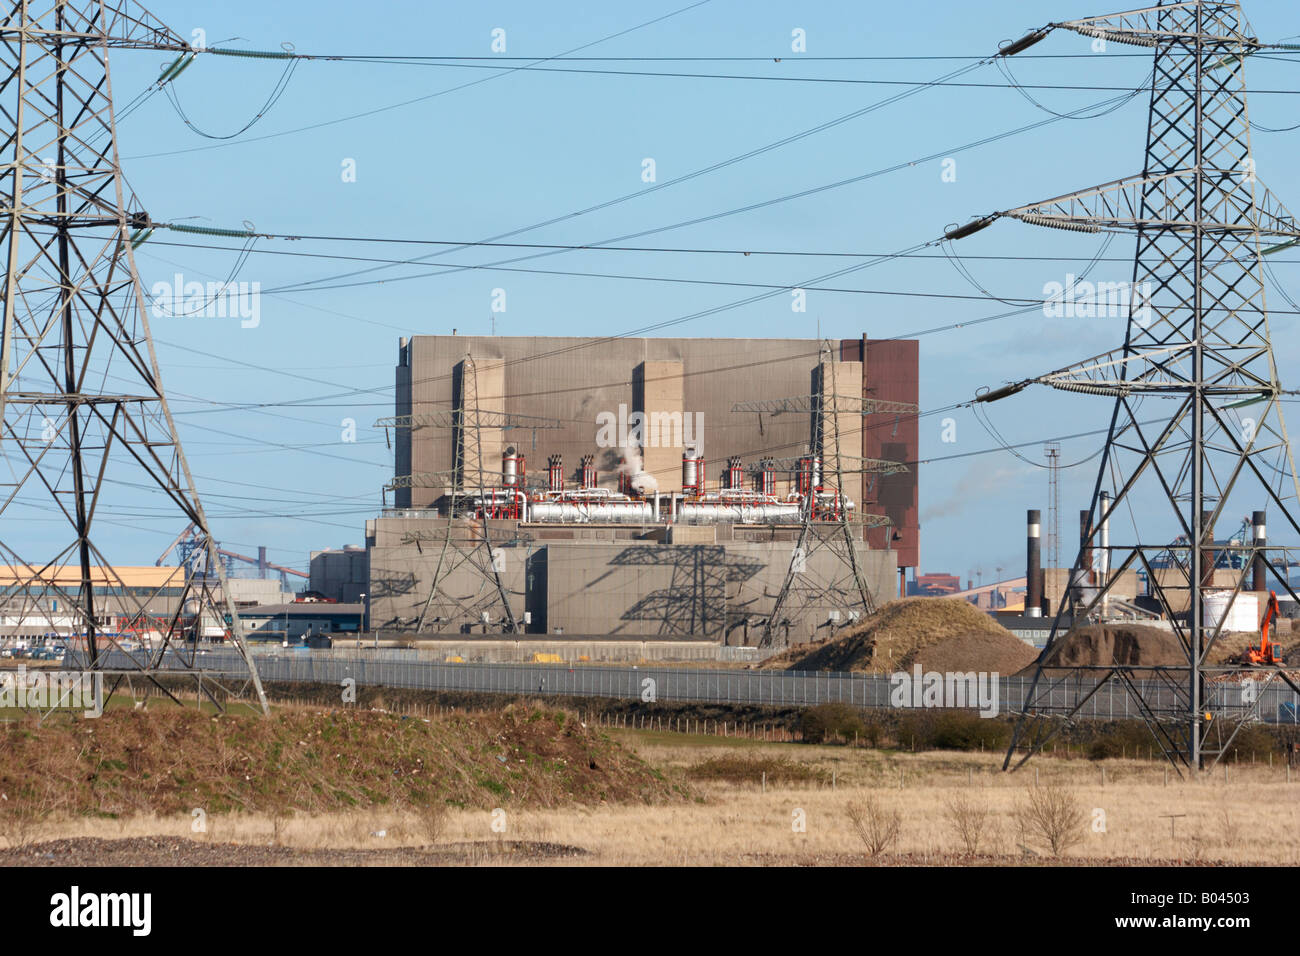 Hartlepool advanced gas-cooled reactor nuclear power station near Seaton Carew in the north east of England, UK, - Stock Image